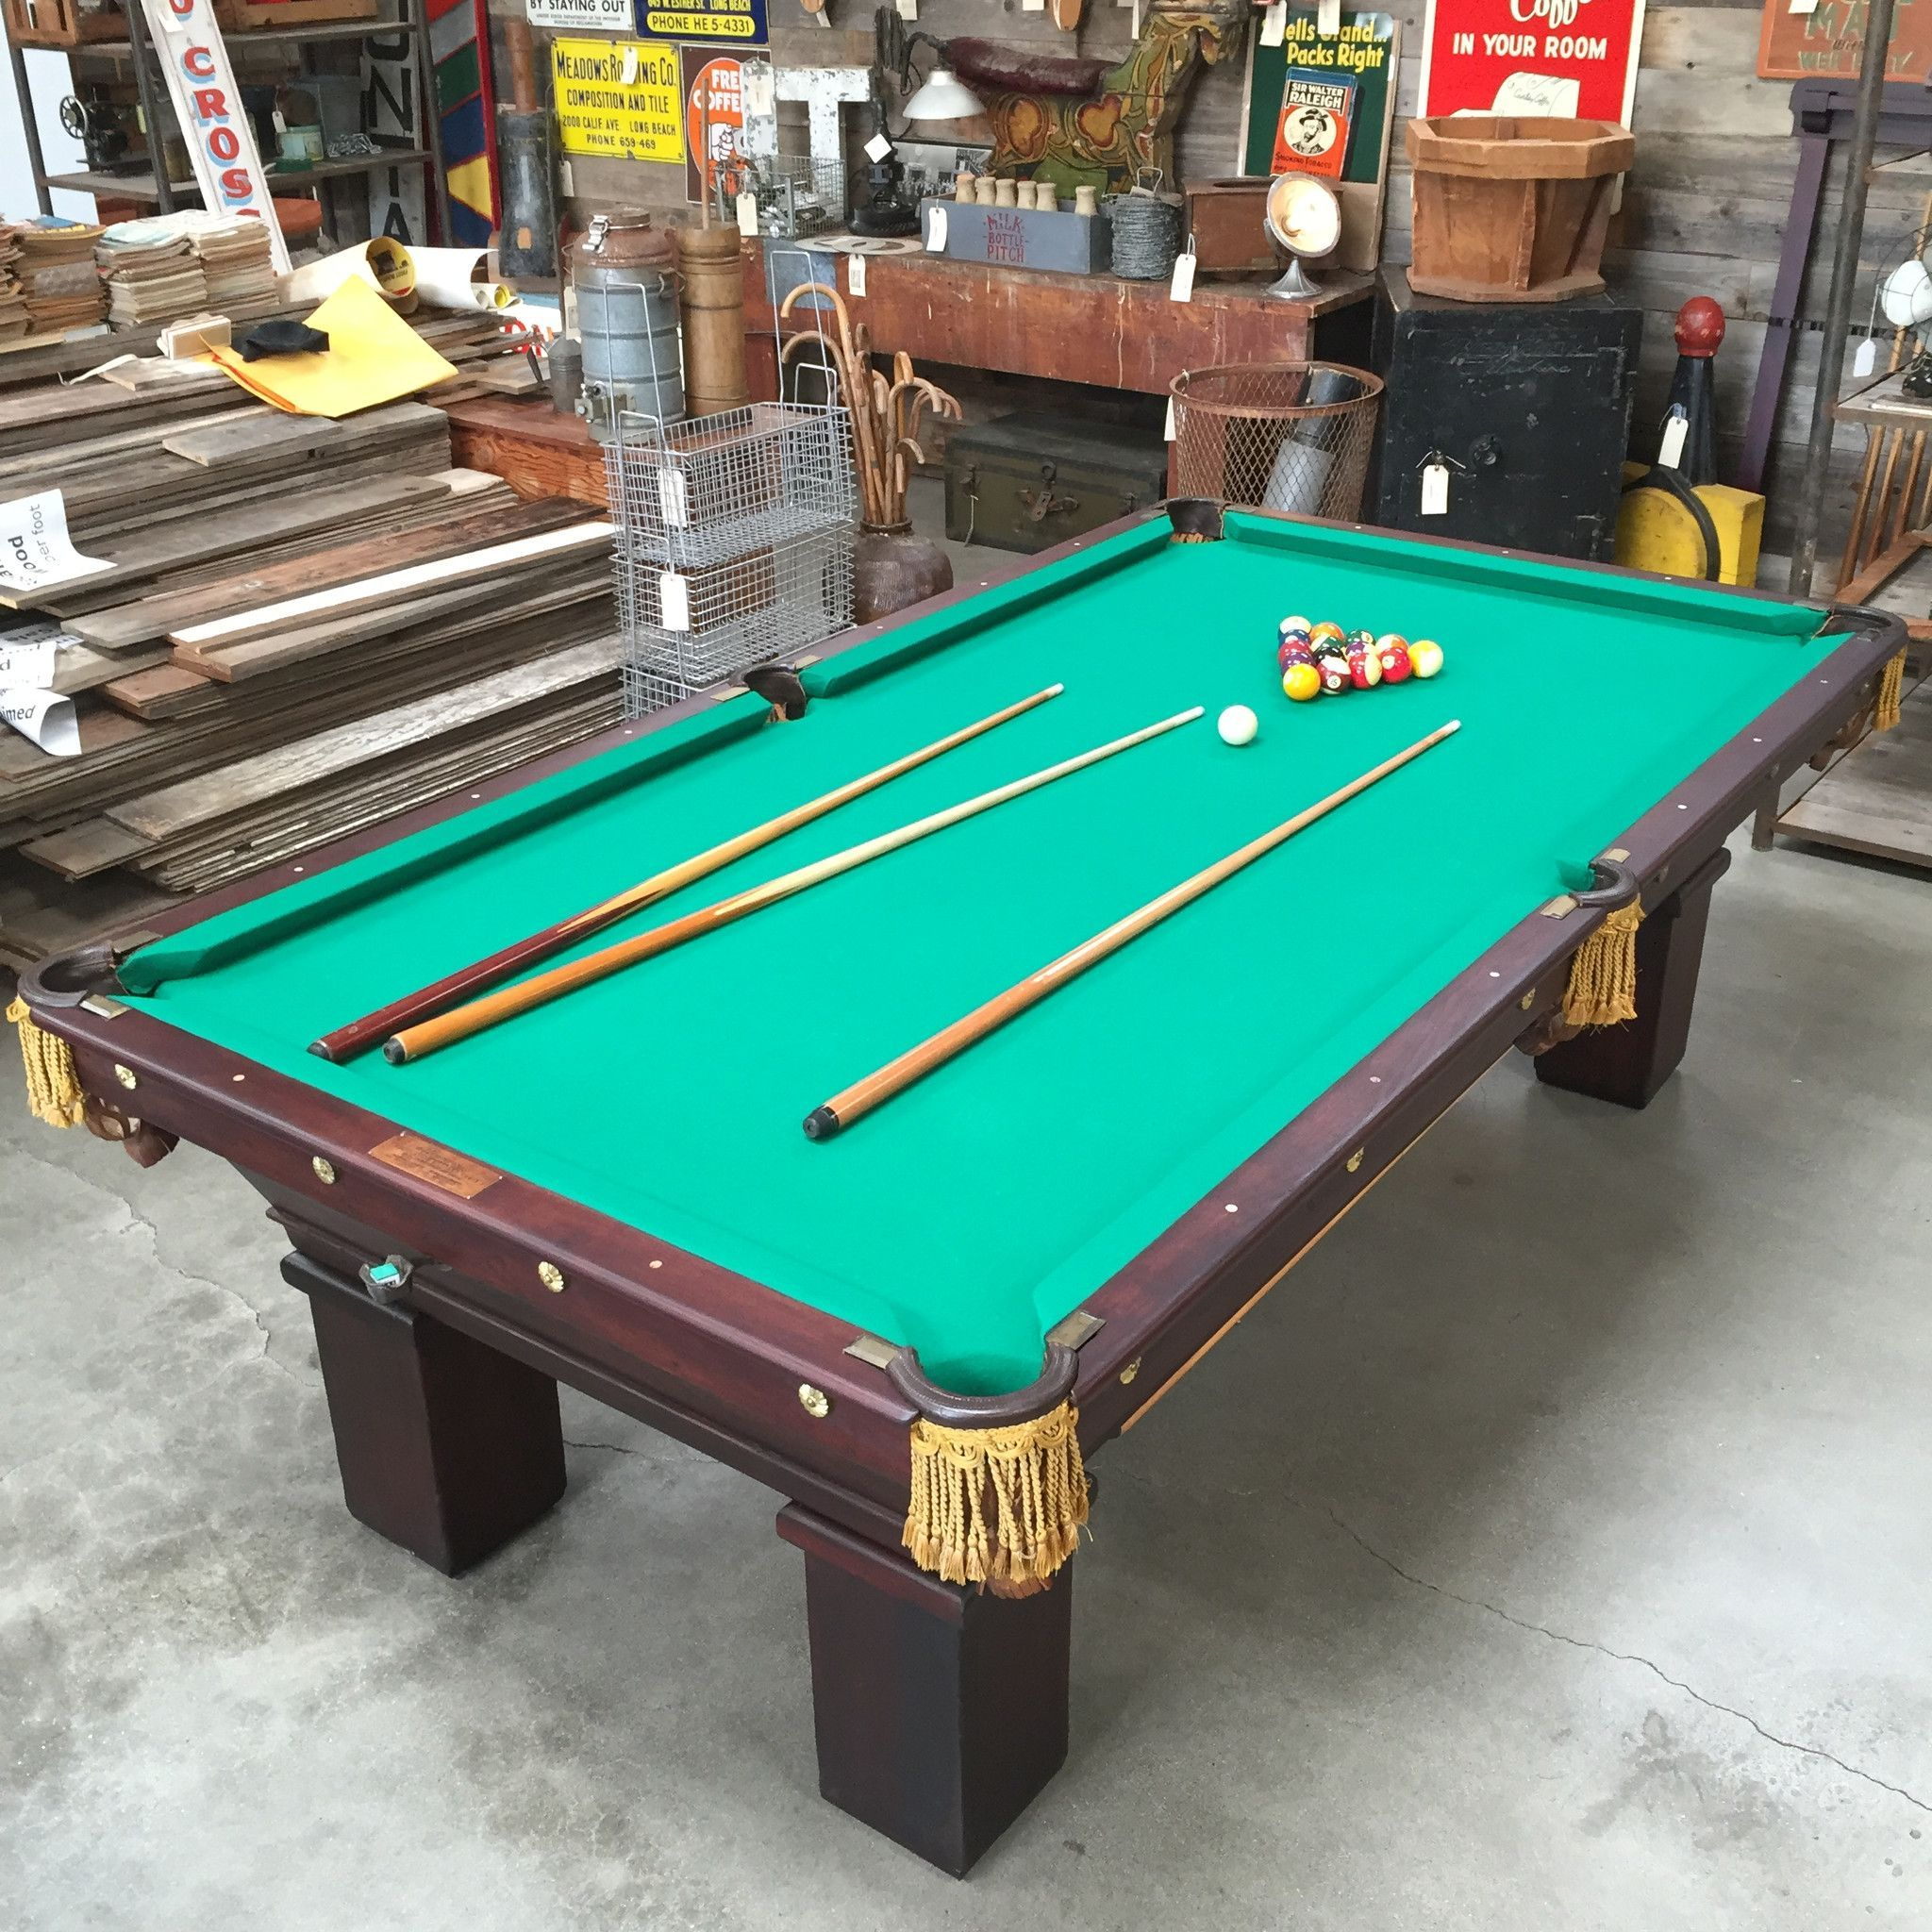 Antique brunswick mikado regulation pool table at the for Brunswick pool tables